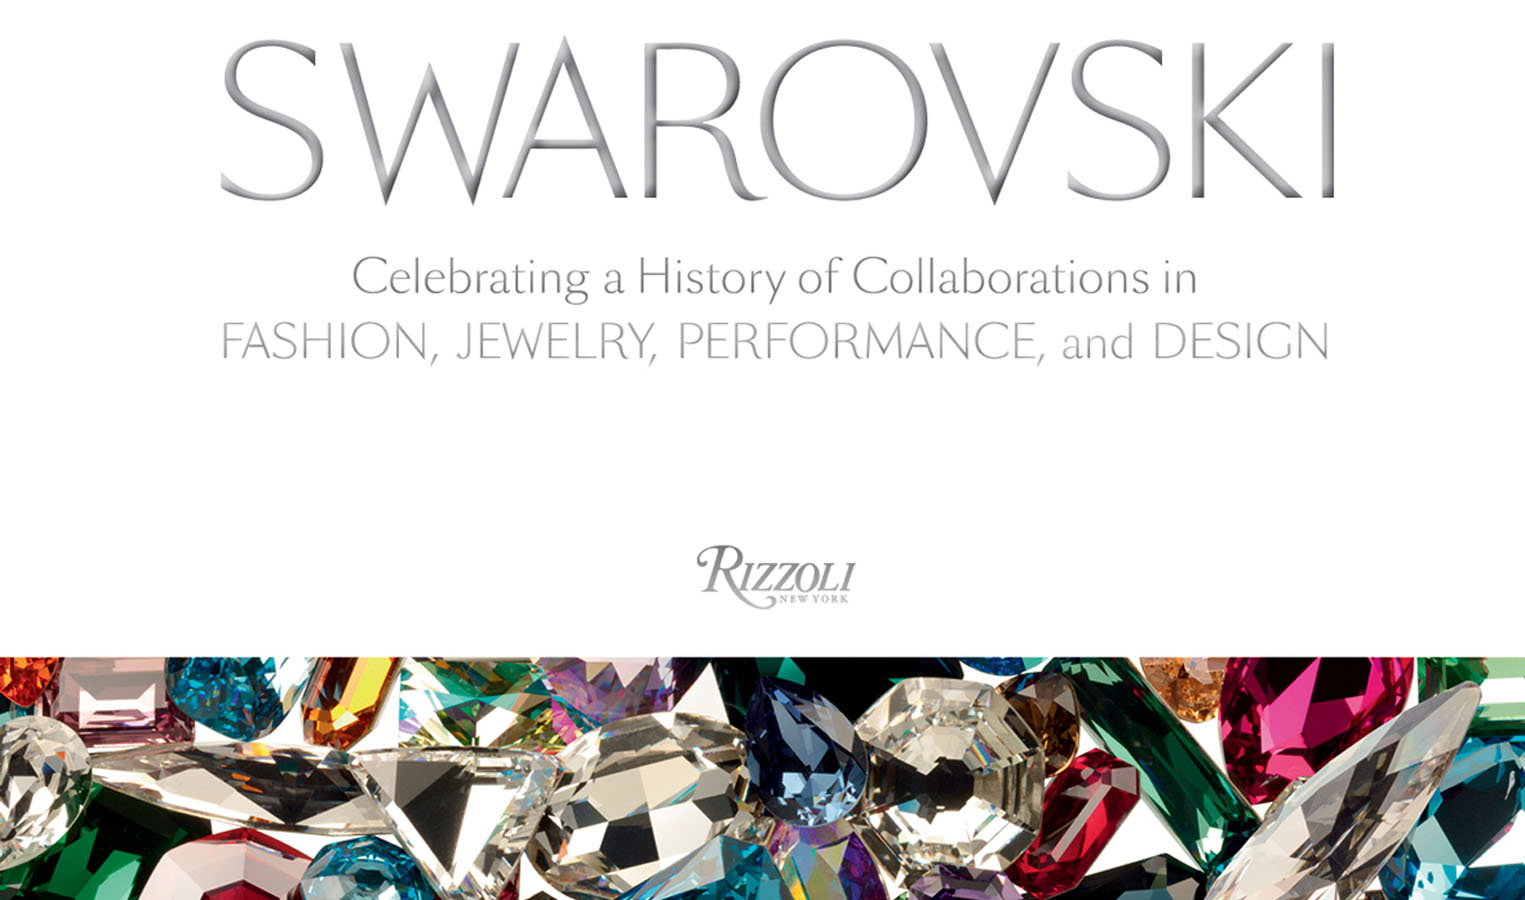 Swarovski book rizzoli on aura tout vu cover